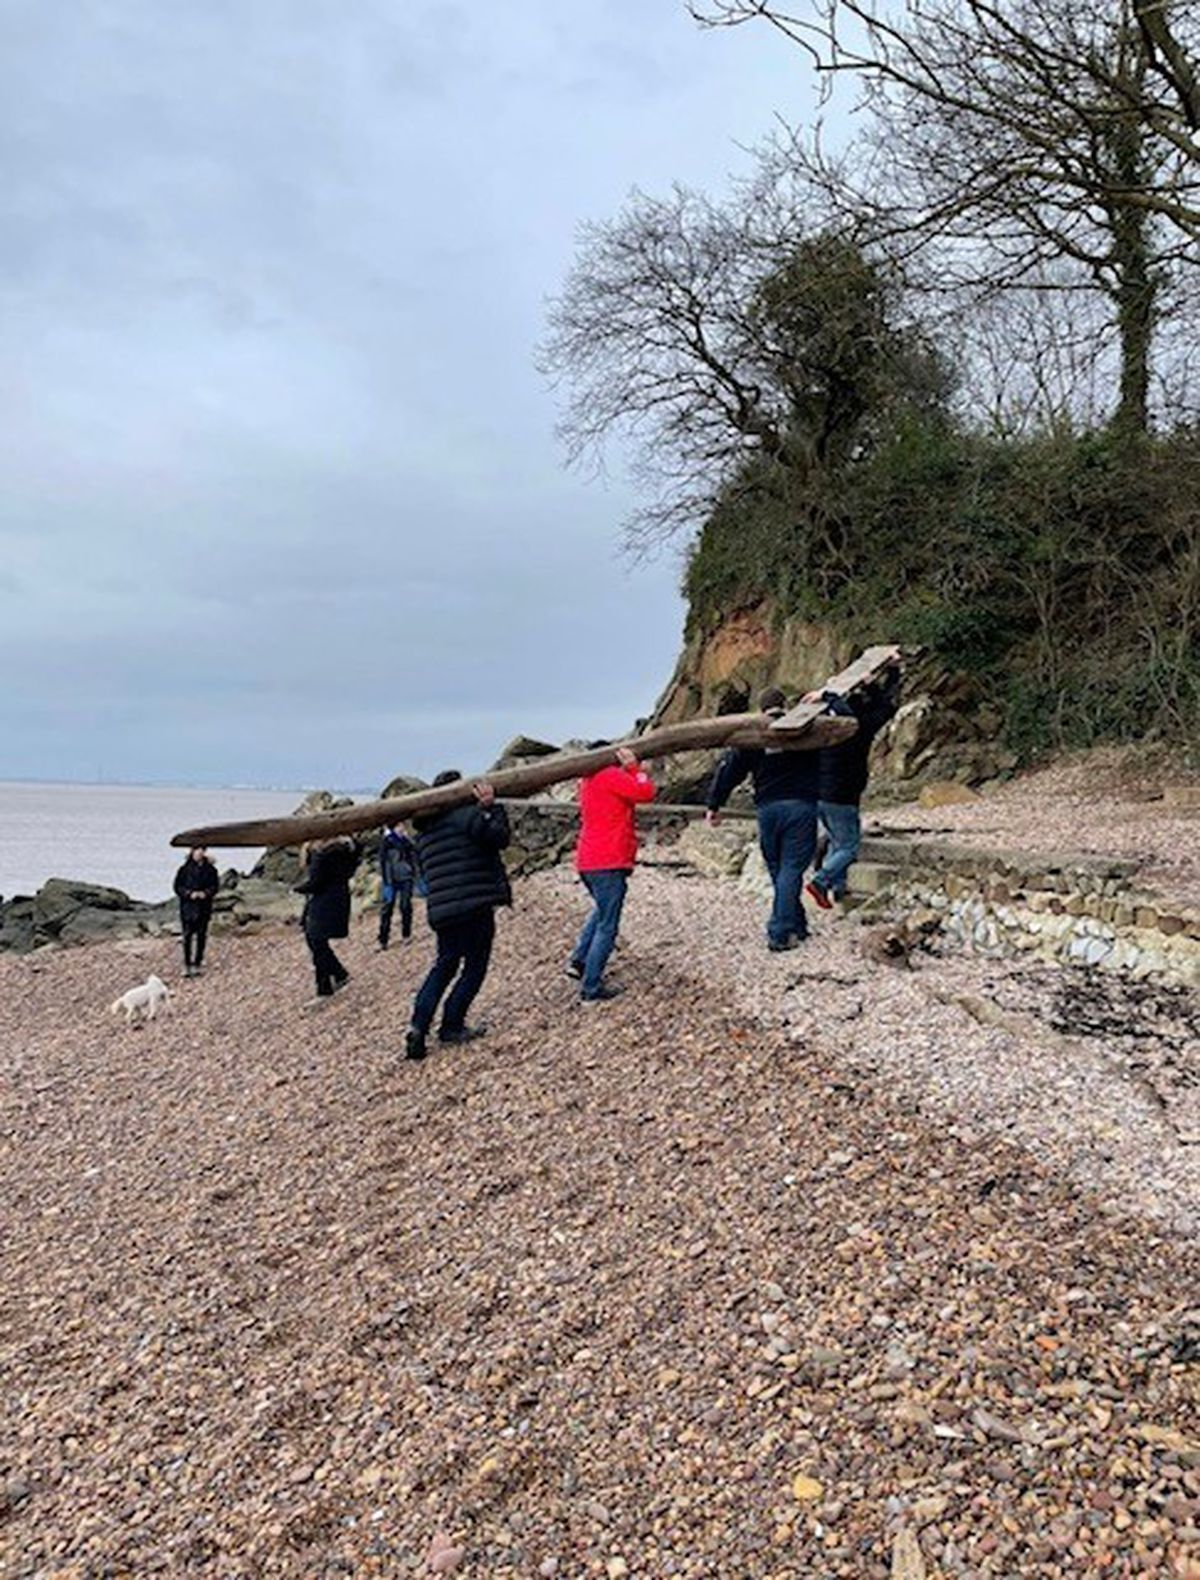 The eel washed up at Portishead beach in Somerset. Pictures: Michelle Lucking